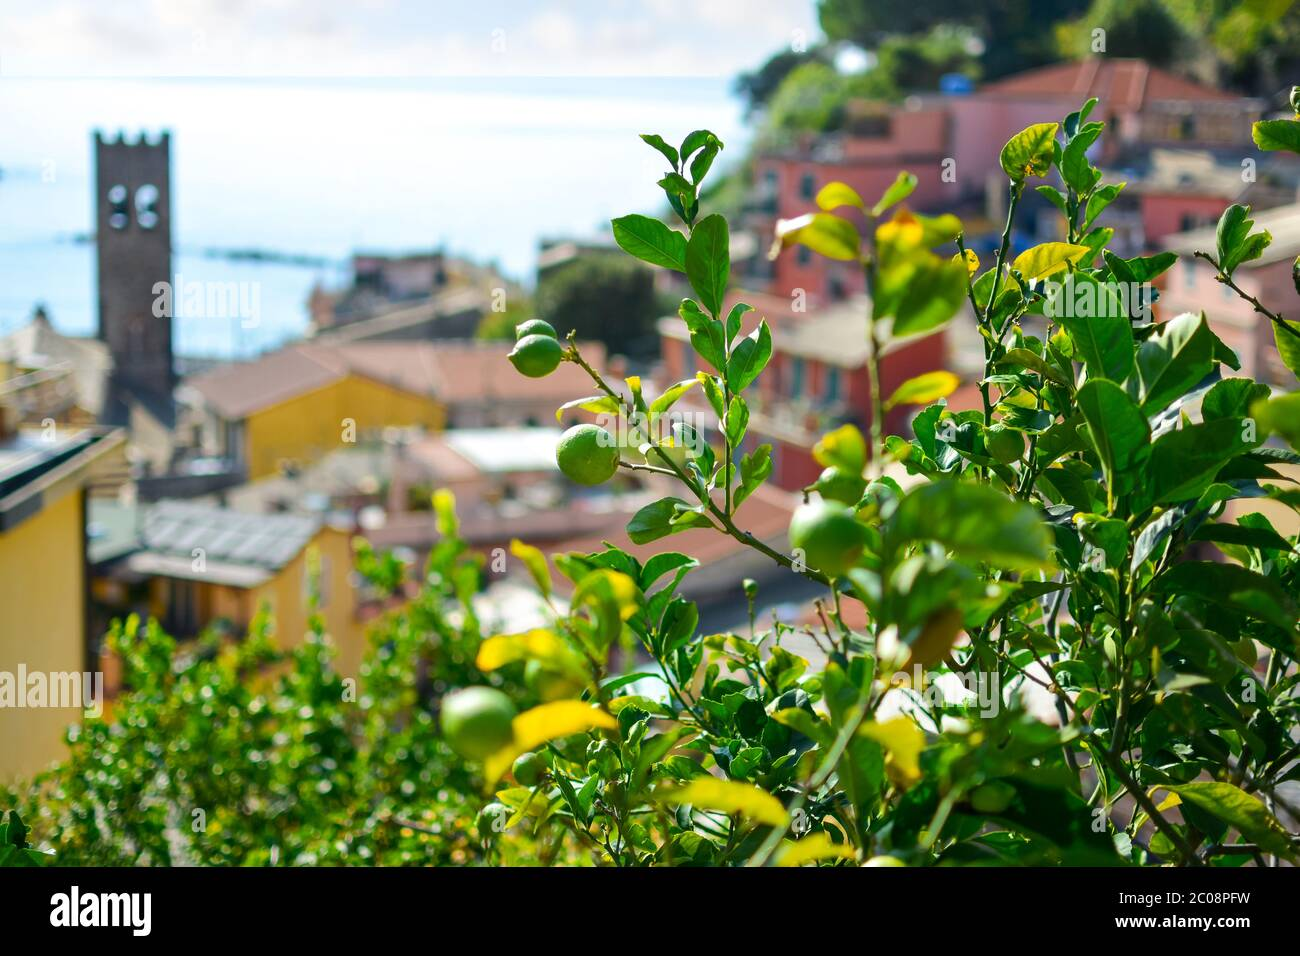 Lemons ripen on a tree in the colorful village of Cinque Terre Italy with the Chiesa di San Giovanni Battista, church and Ligurian sea blurred in view Stock Photo